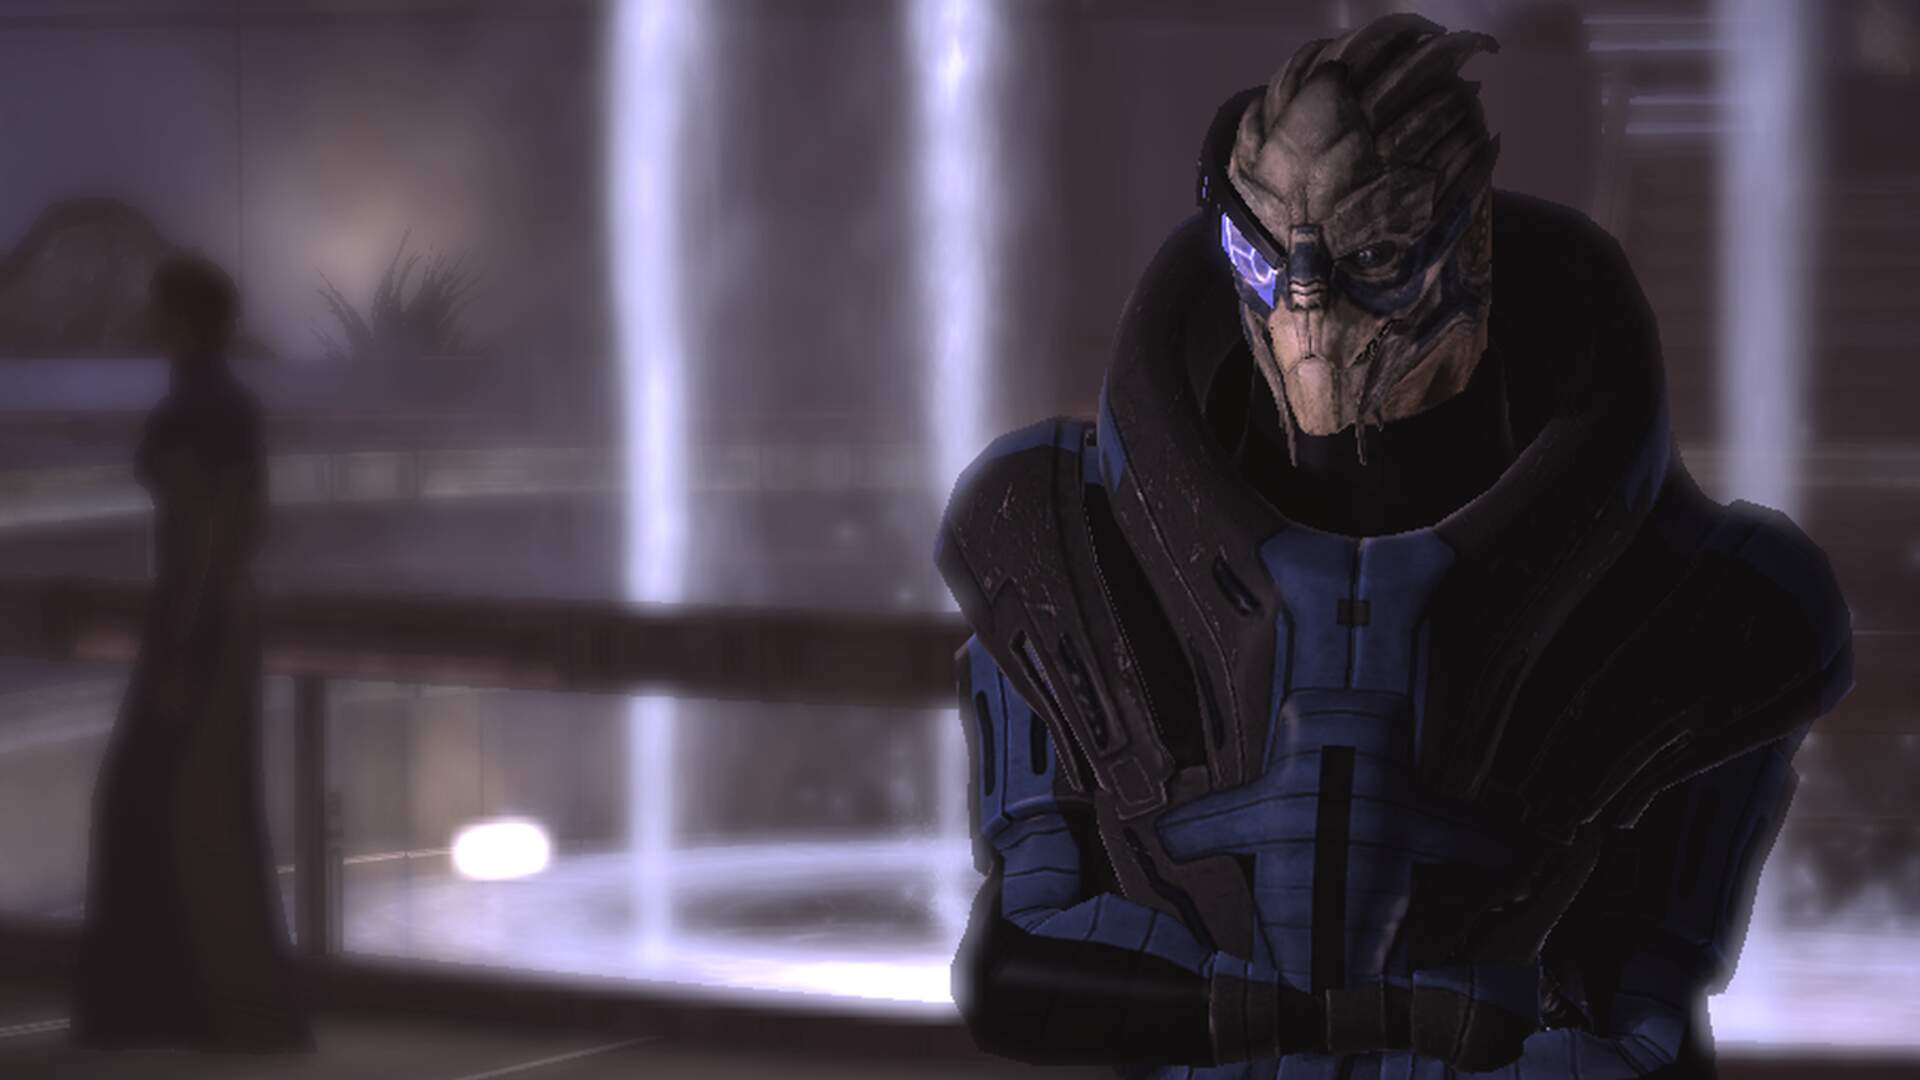 How Mass Effect 2 Made Garrus More Than Just Another Squadmate, And Created an Iconic Character in the Process